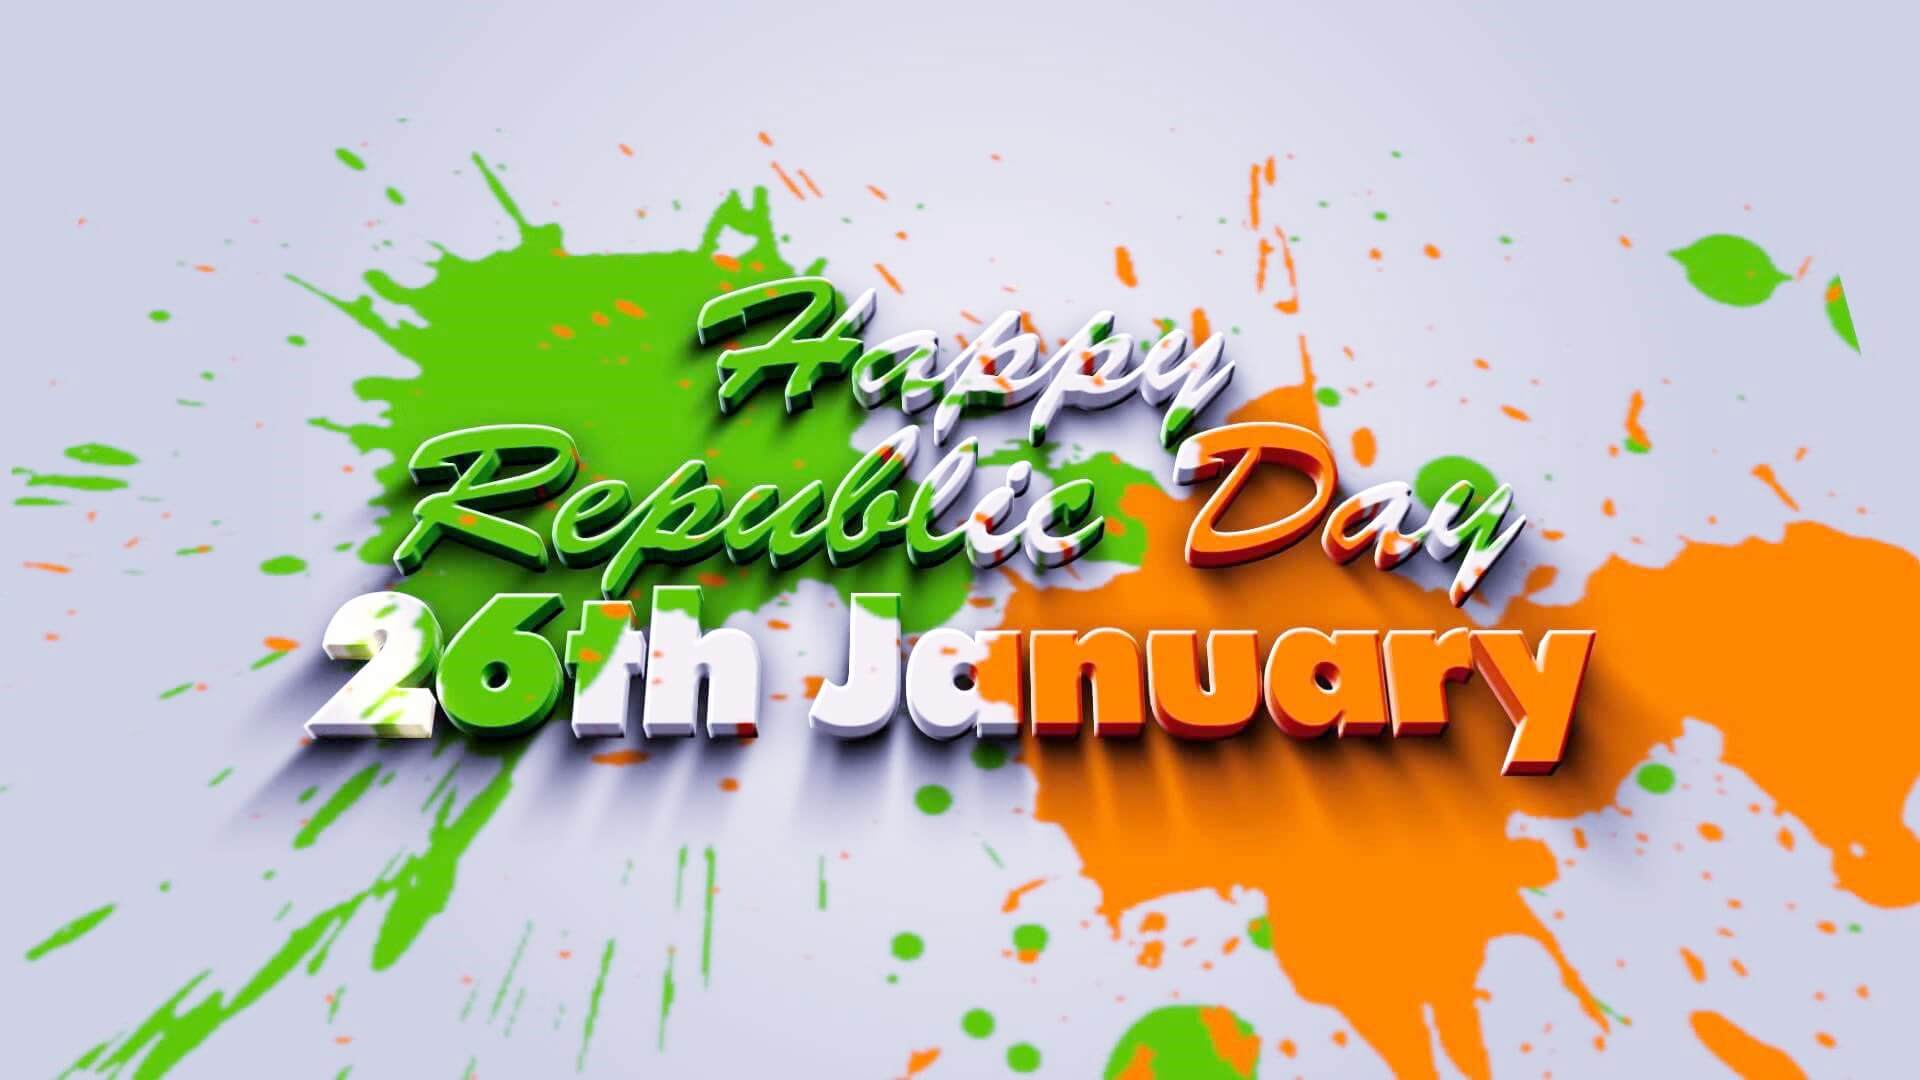 happy republic day india colorful greetings 26th january hd wallpaper